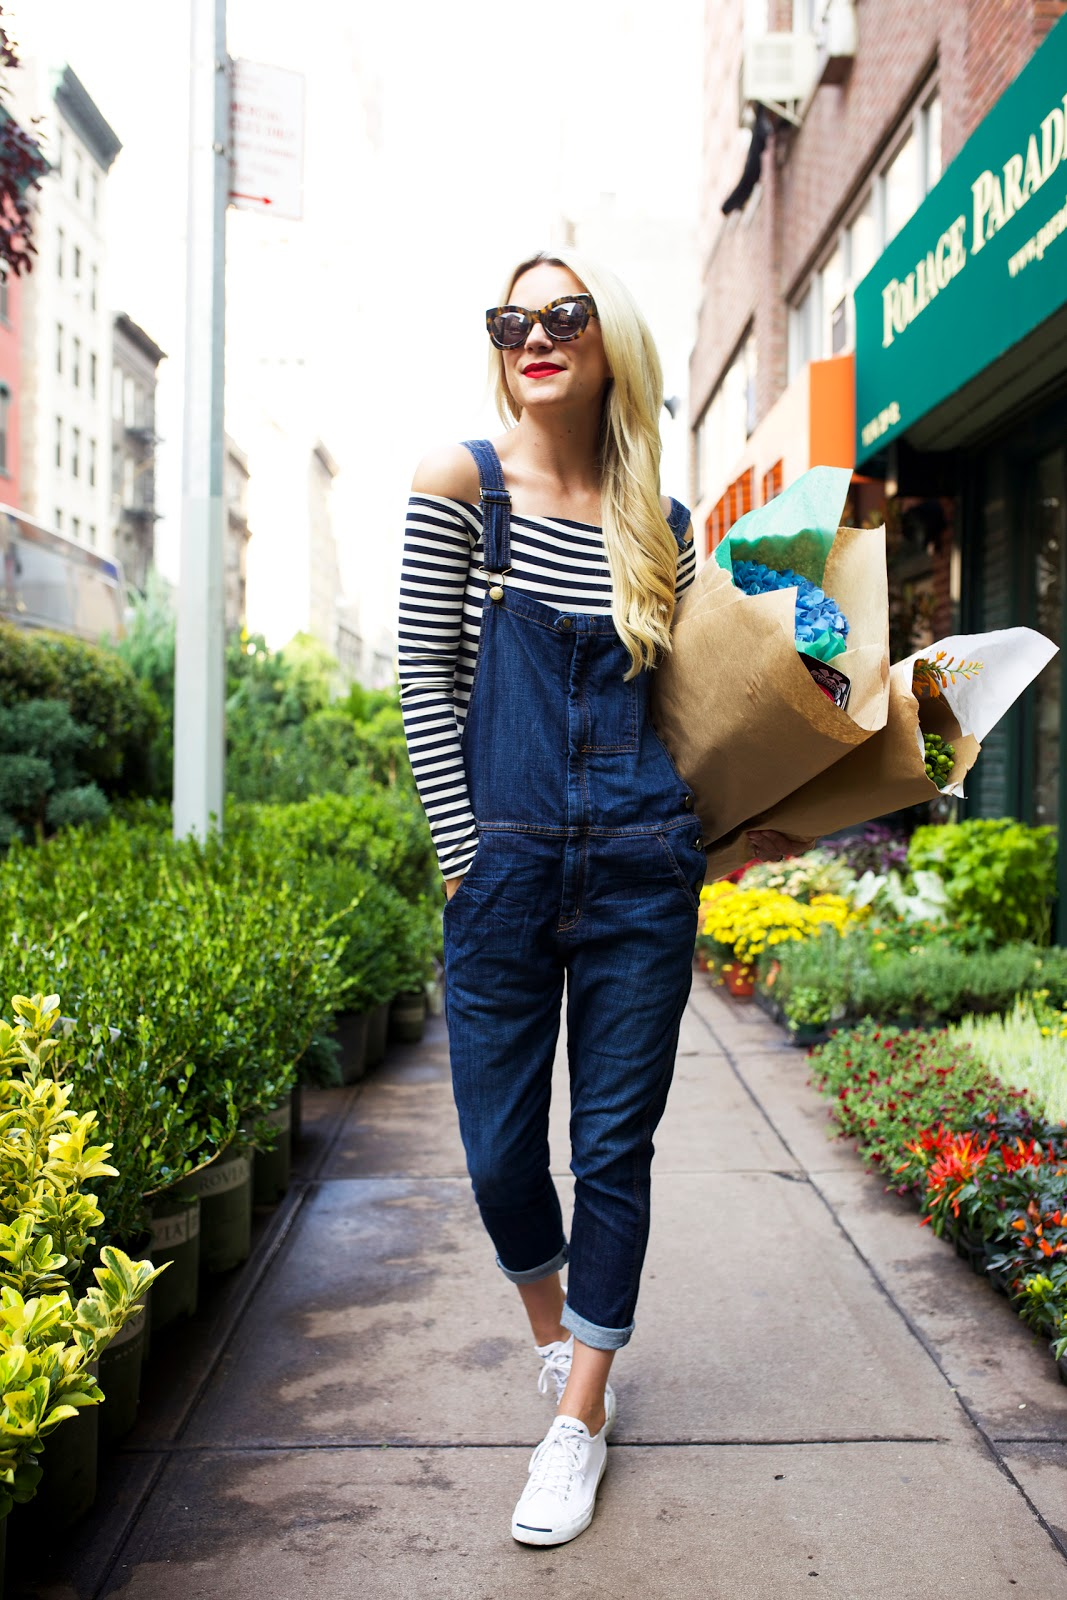 Steal Her Style Flower Walk With Atlantic Pacific The